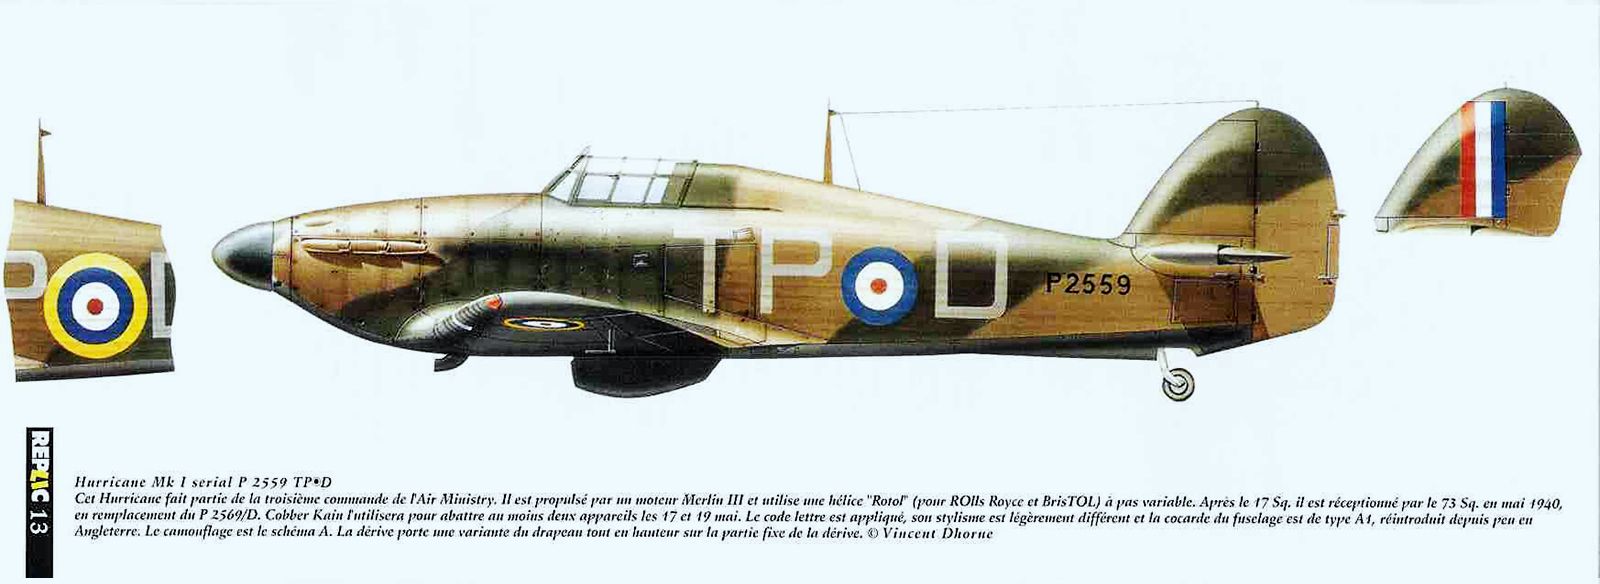 Hawker Hurricane I RAF 73Sqn TPD P2559 flown by Cobber Kain France May 1940 0A